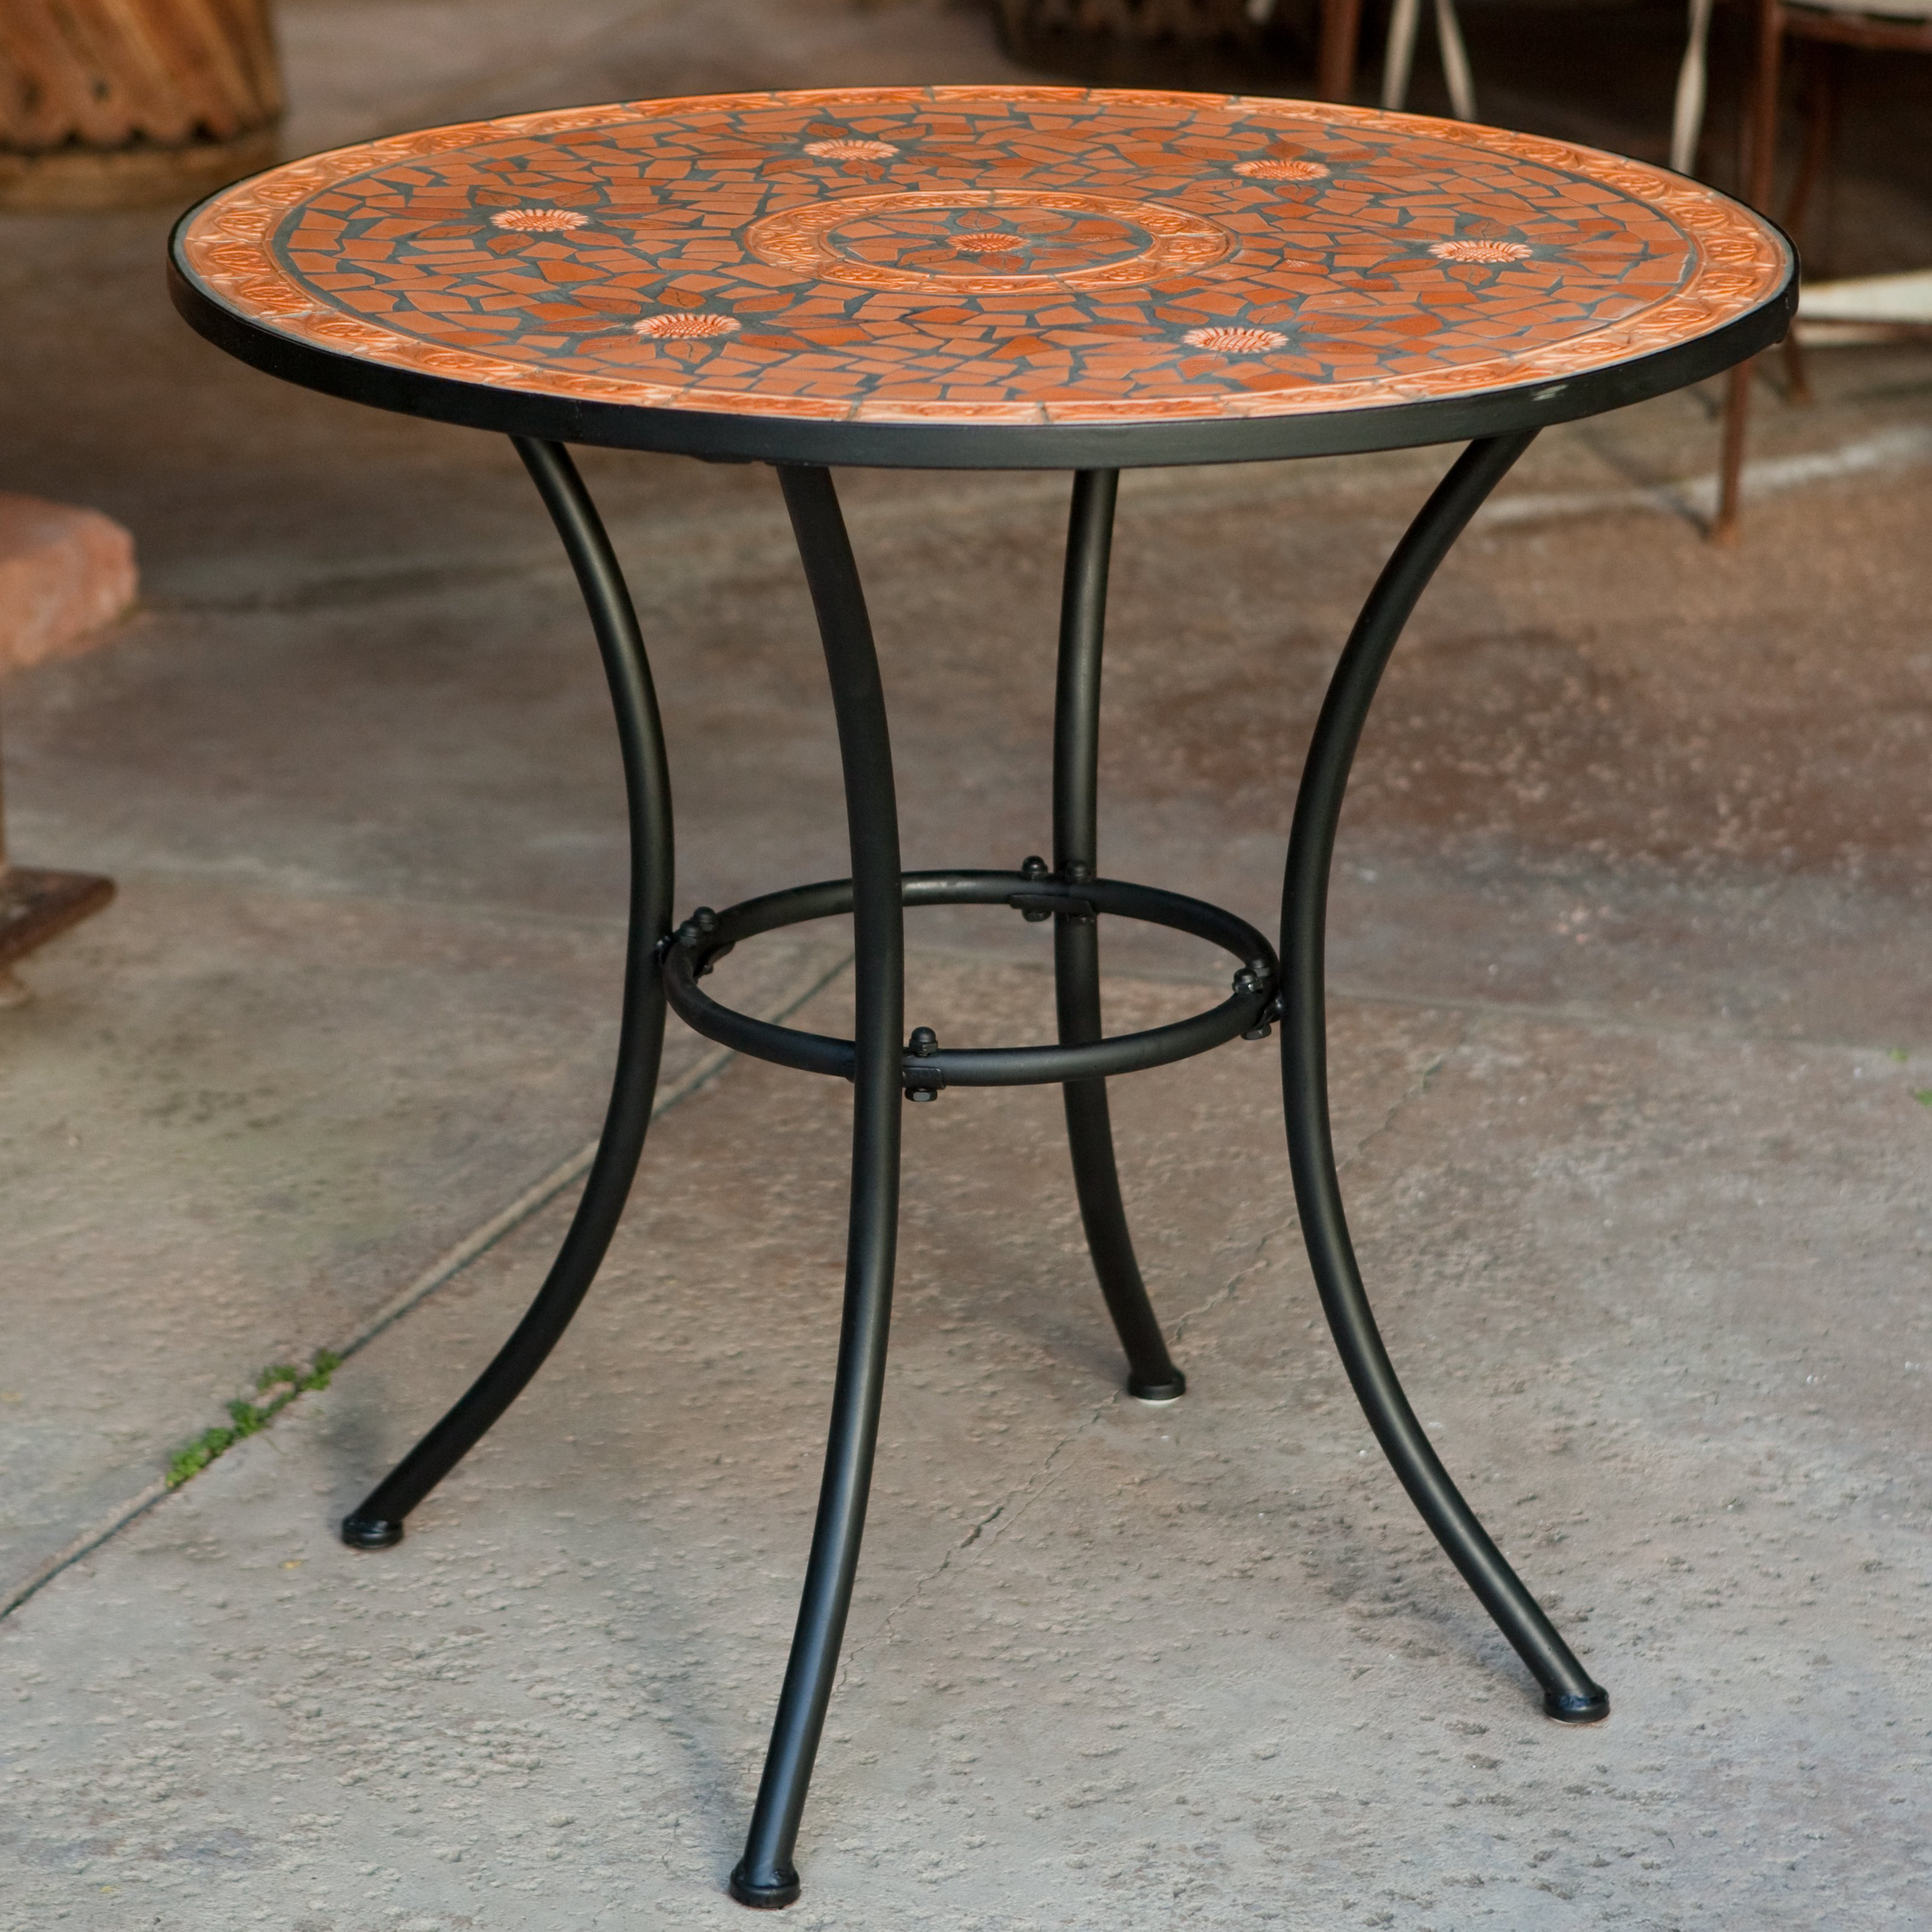 Coral Coast Terra Cotta Mosaic Bistro Table by 4 Seasons Global Inc